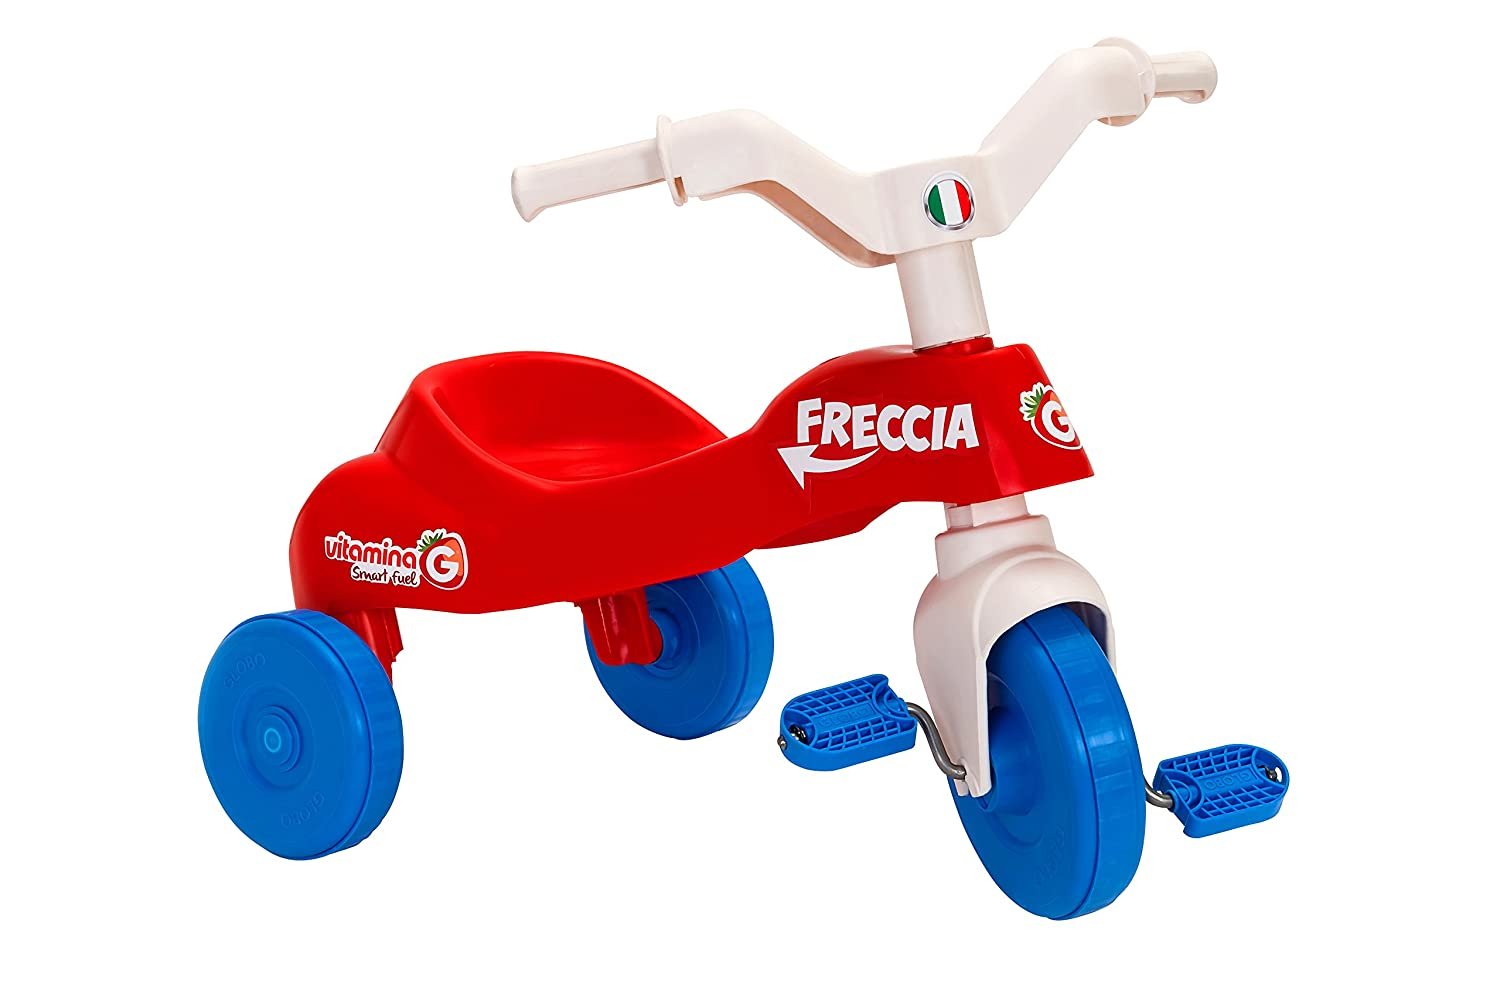 red /Tricycle in Plastic Vitamin G 05157/